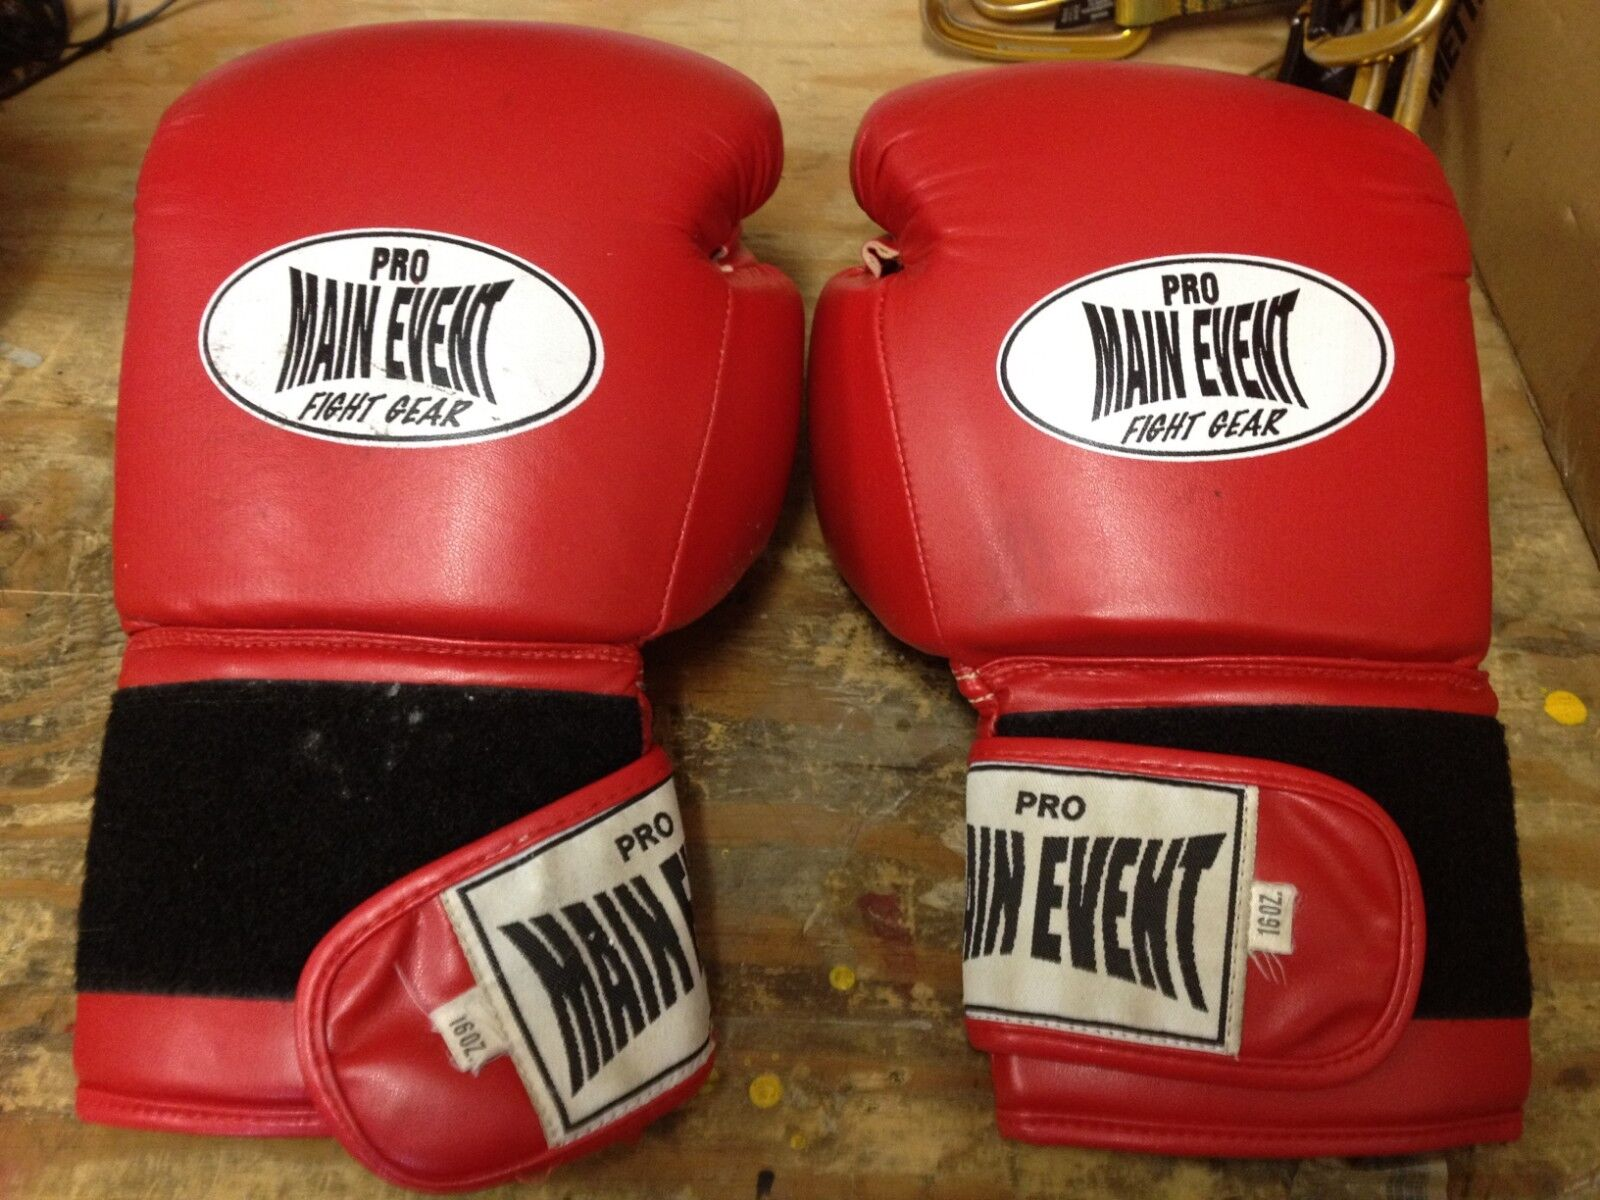 16 oz Pro Main Event Fight Gear Boxing G  s, Red  enjoy saving 30-50% off